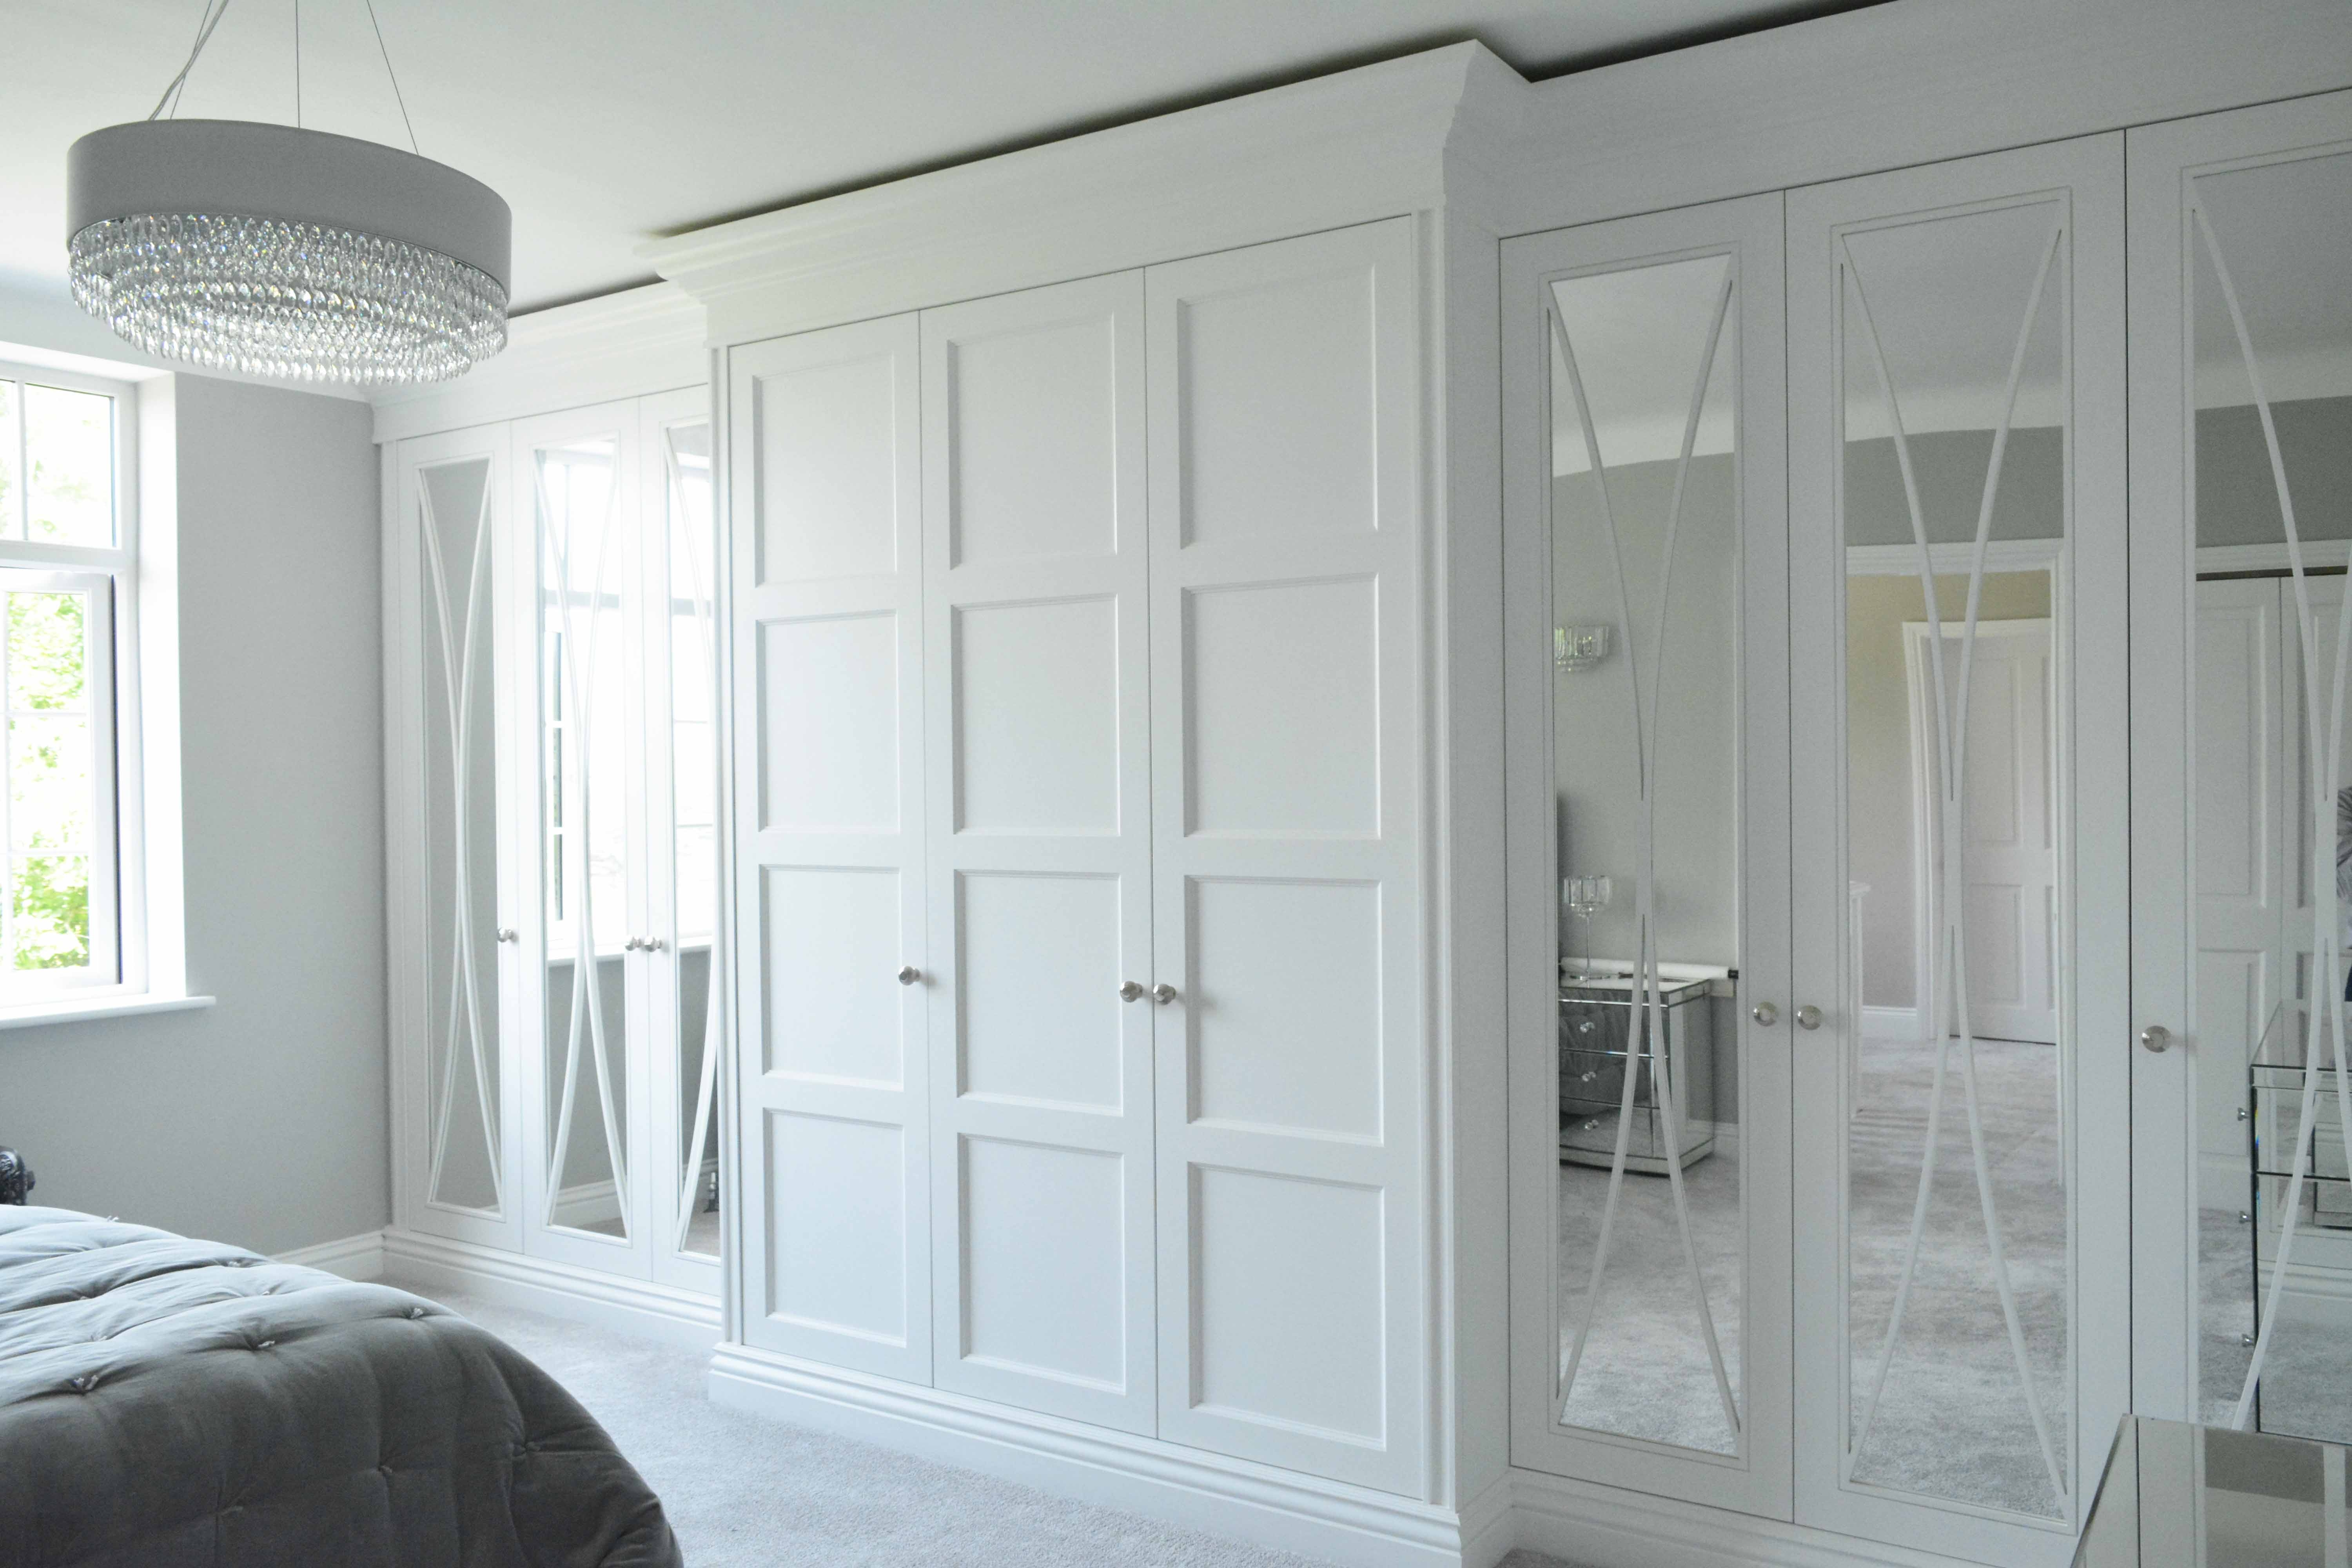 Luxury Fitted Wardrobes Boreham Wood Hertfordshire The Heritage Regarding Fitted Wooden Wardrobes (Image 13 of 15)